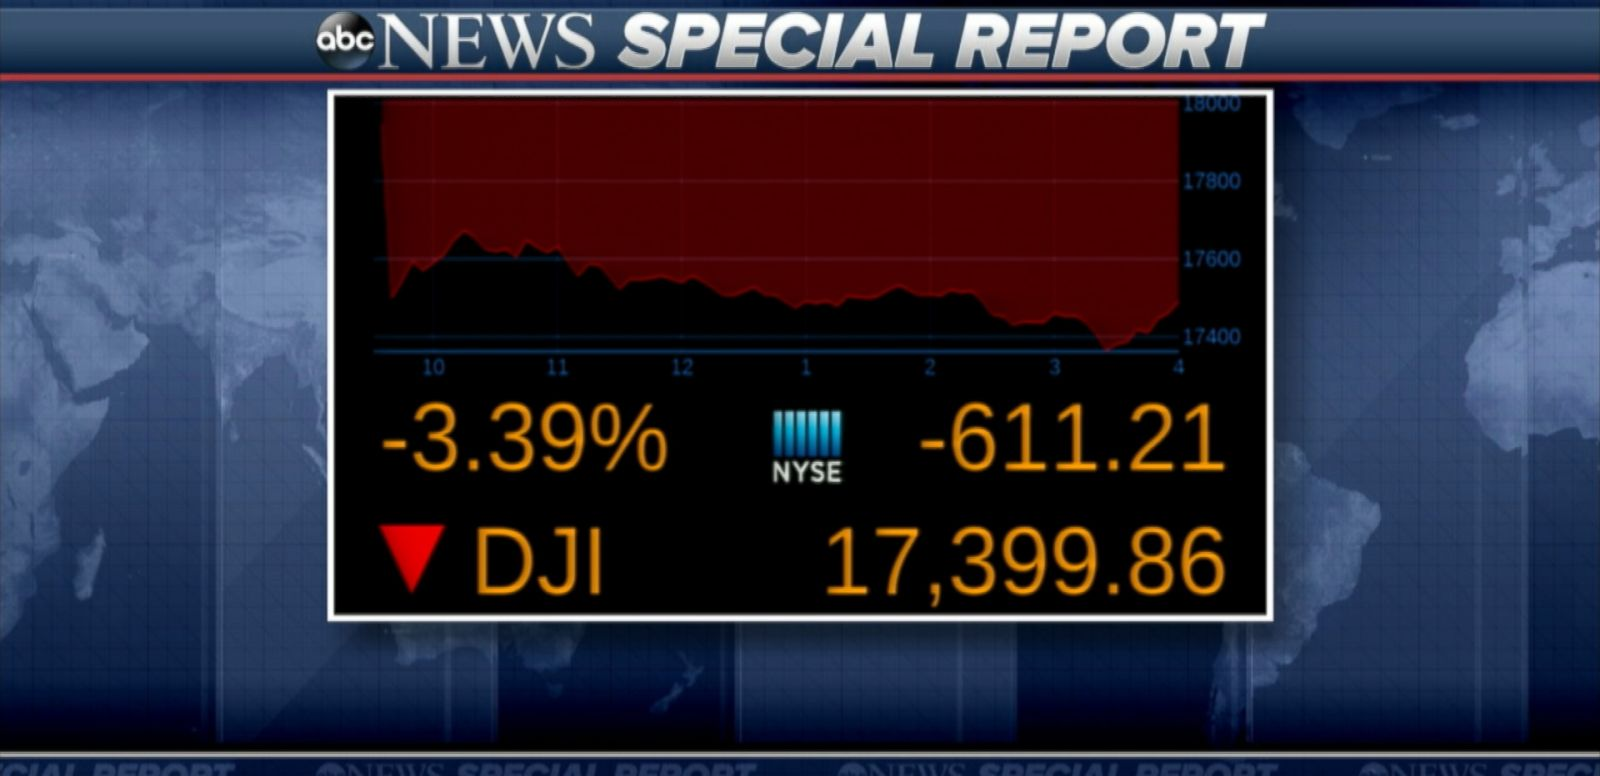 SPECIAL REPORT VIDEO: Dow Plunges After UK Votes to Leave European Union